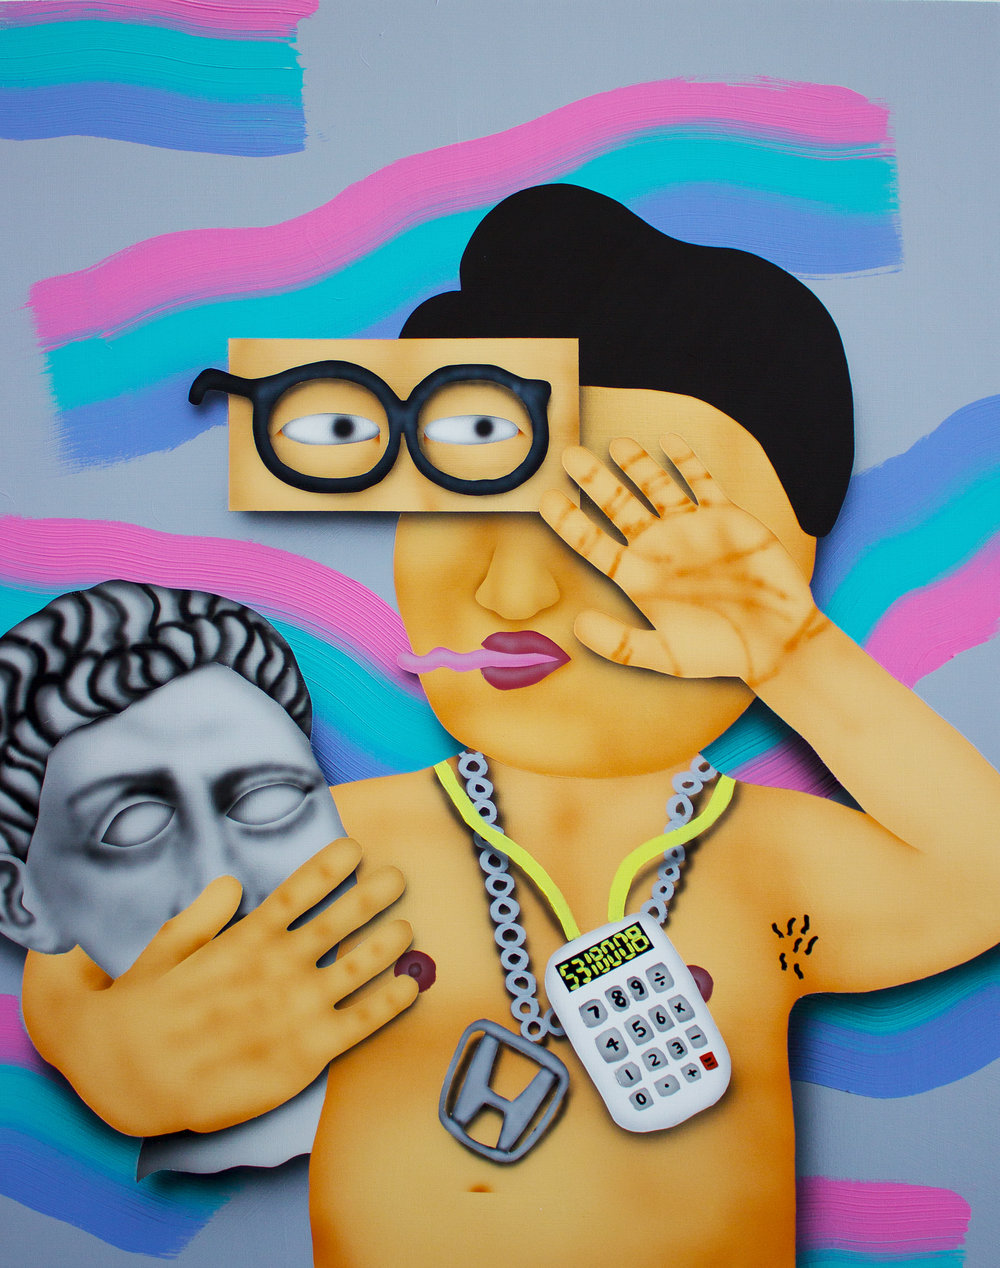 Sean-McGee Phetsarath  Get Turnt With The Math Club , 2016 Acrylic on Wood Panel 30 x 24 in.